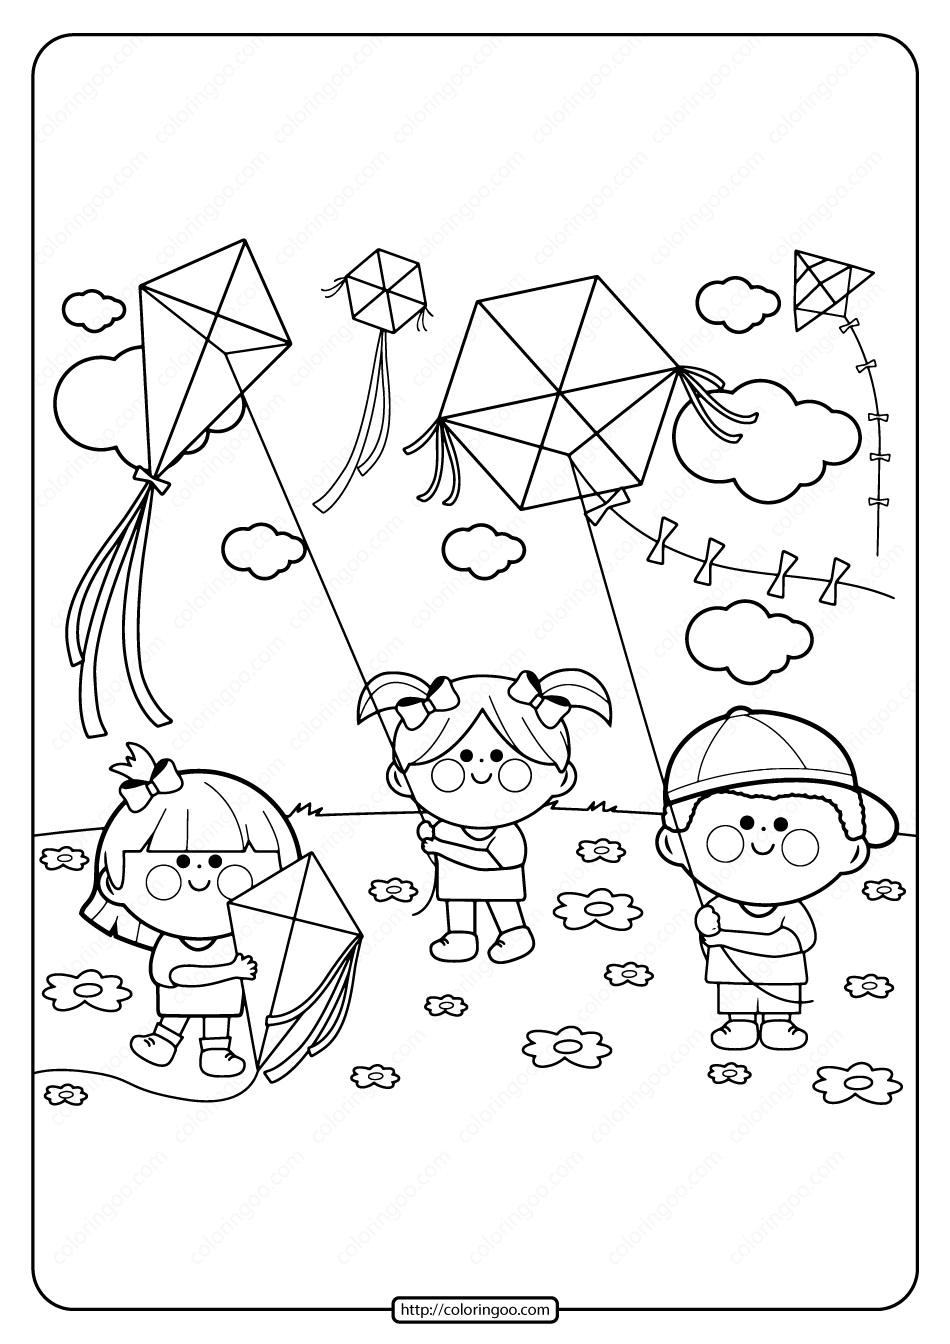 Printable Kids Flying Kites Pdf Coloring Page Spring Coloring Pages Coloring Pages Coloring Books